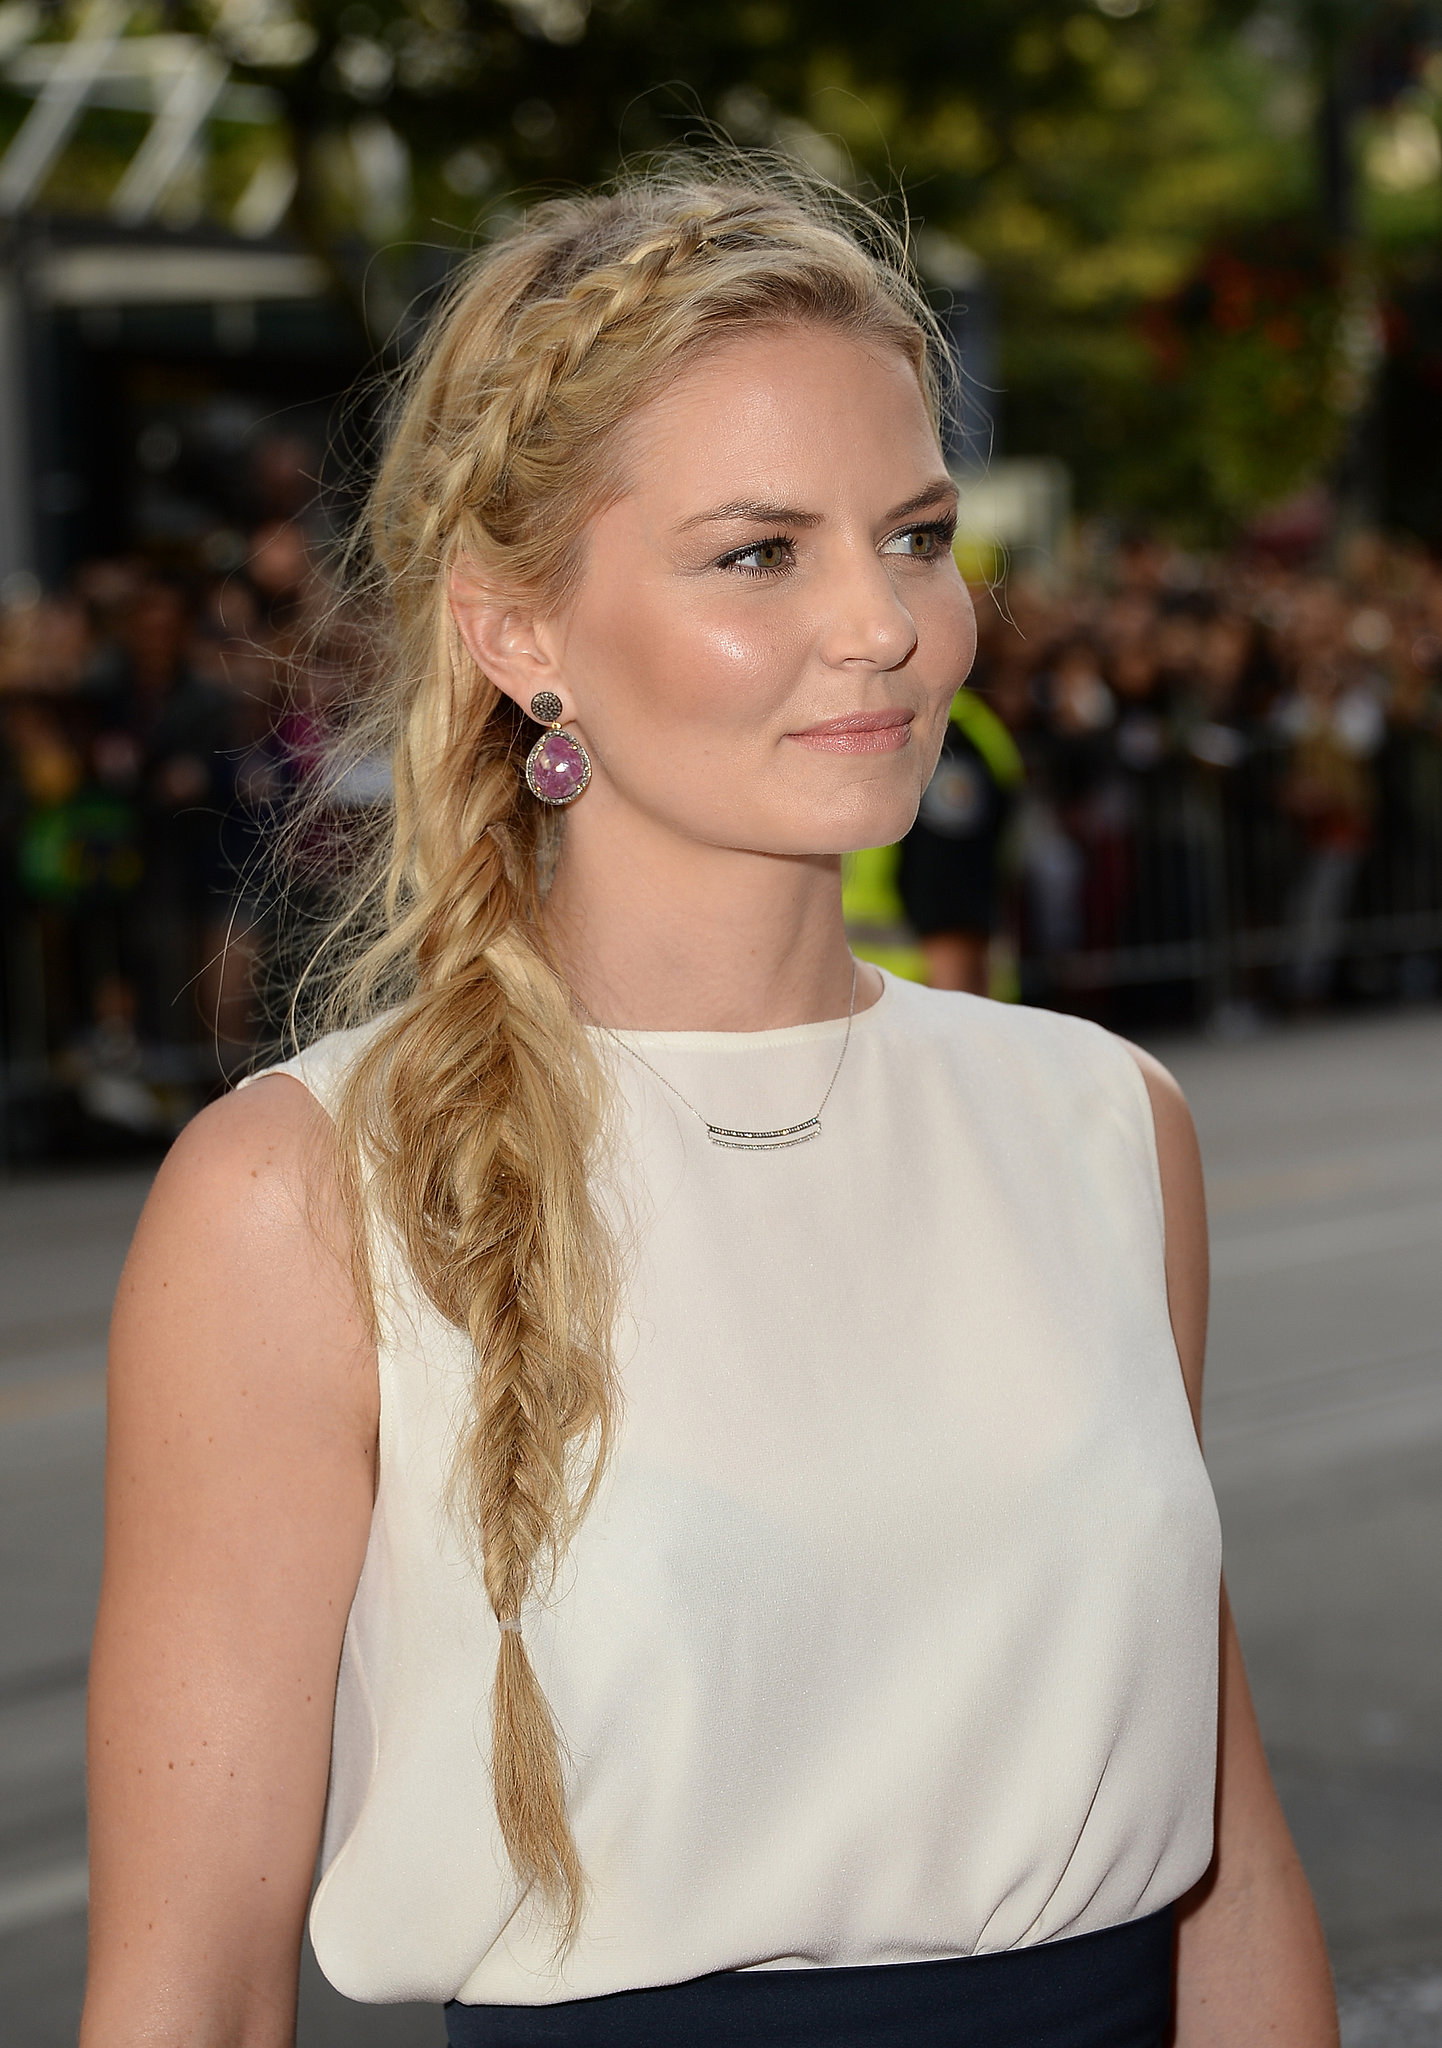 Jennifer Morrison had a bevy of braids on her way to the Gravity premiere.